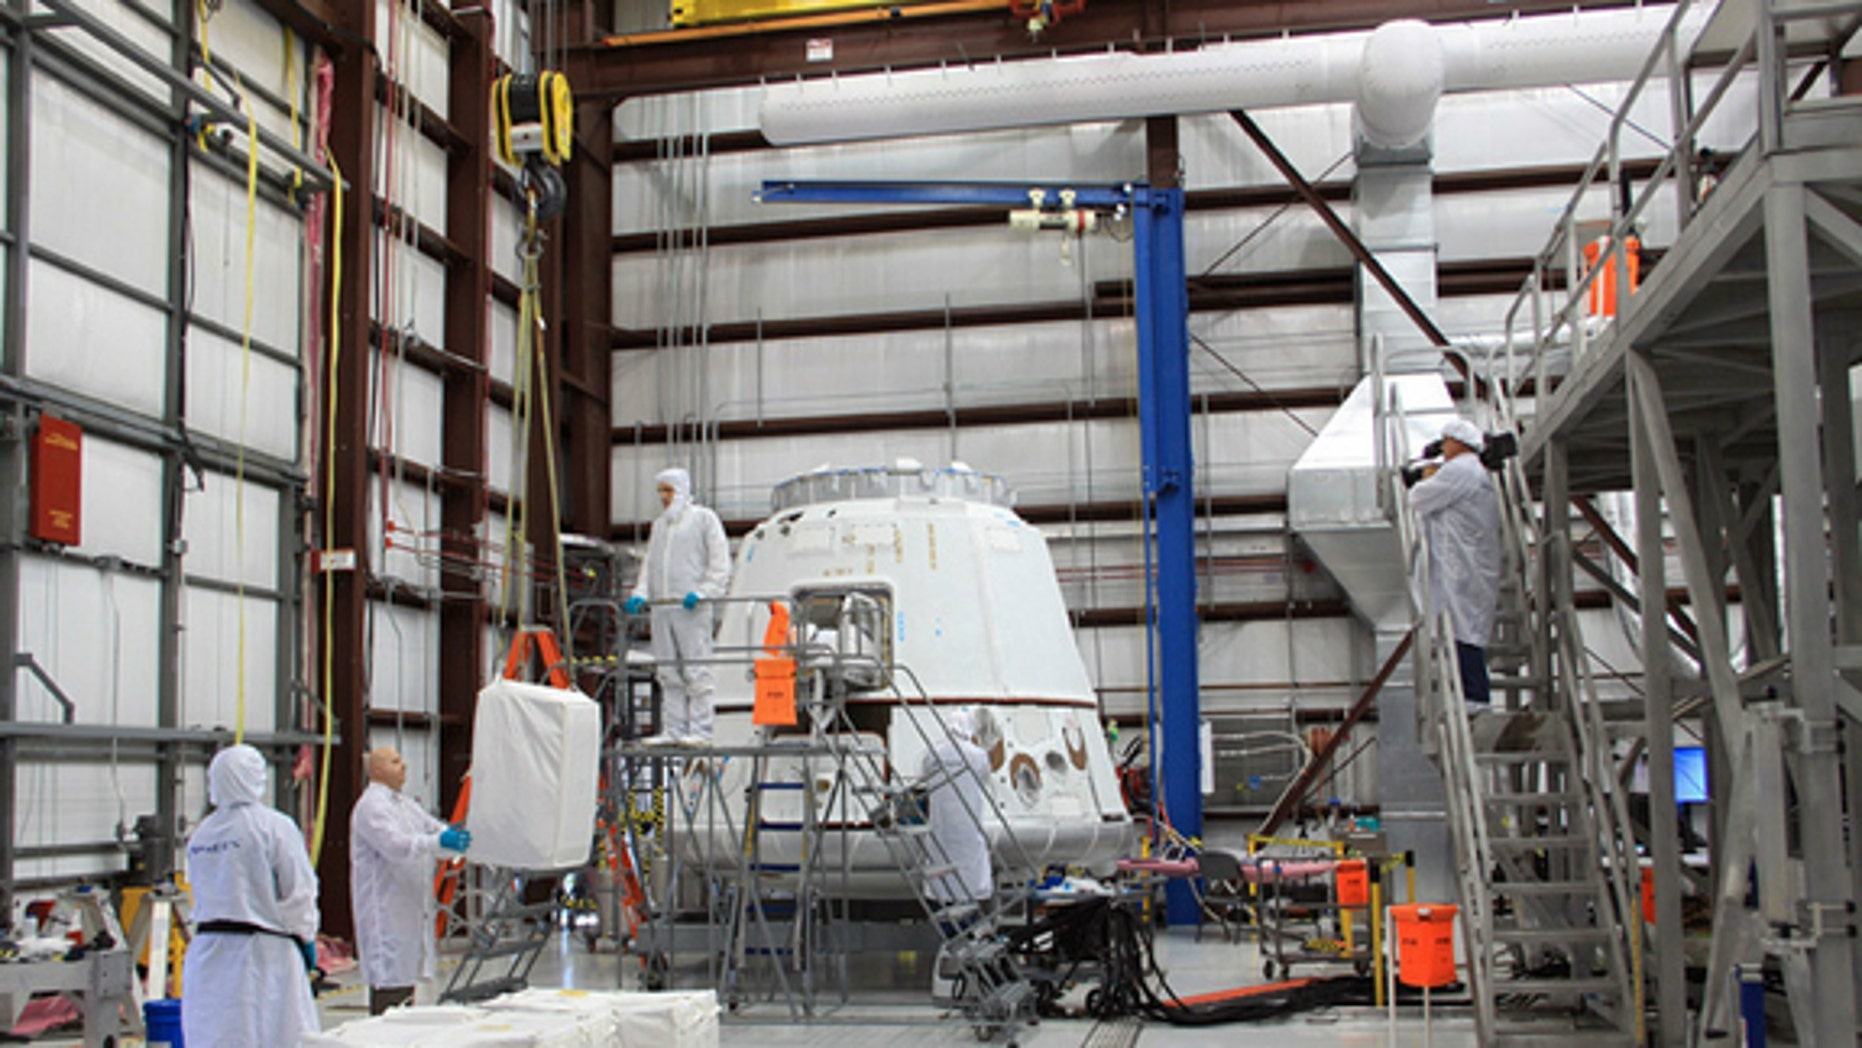 """SpaceX tweeted on April 22, 2012: """"Another shot from cargo loading with @NASA in anticipation of the upcoming demo flight to the Space Station."""""""